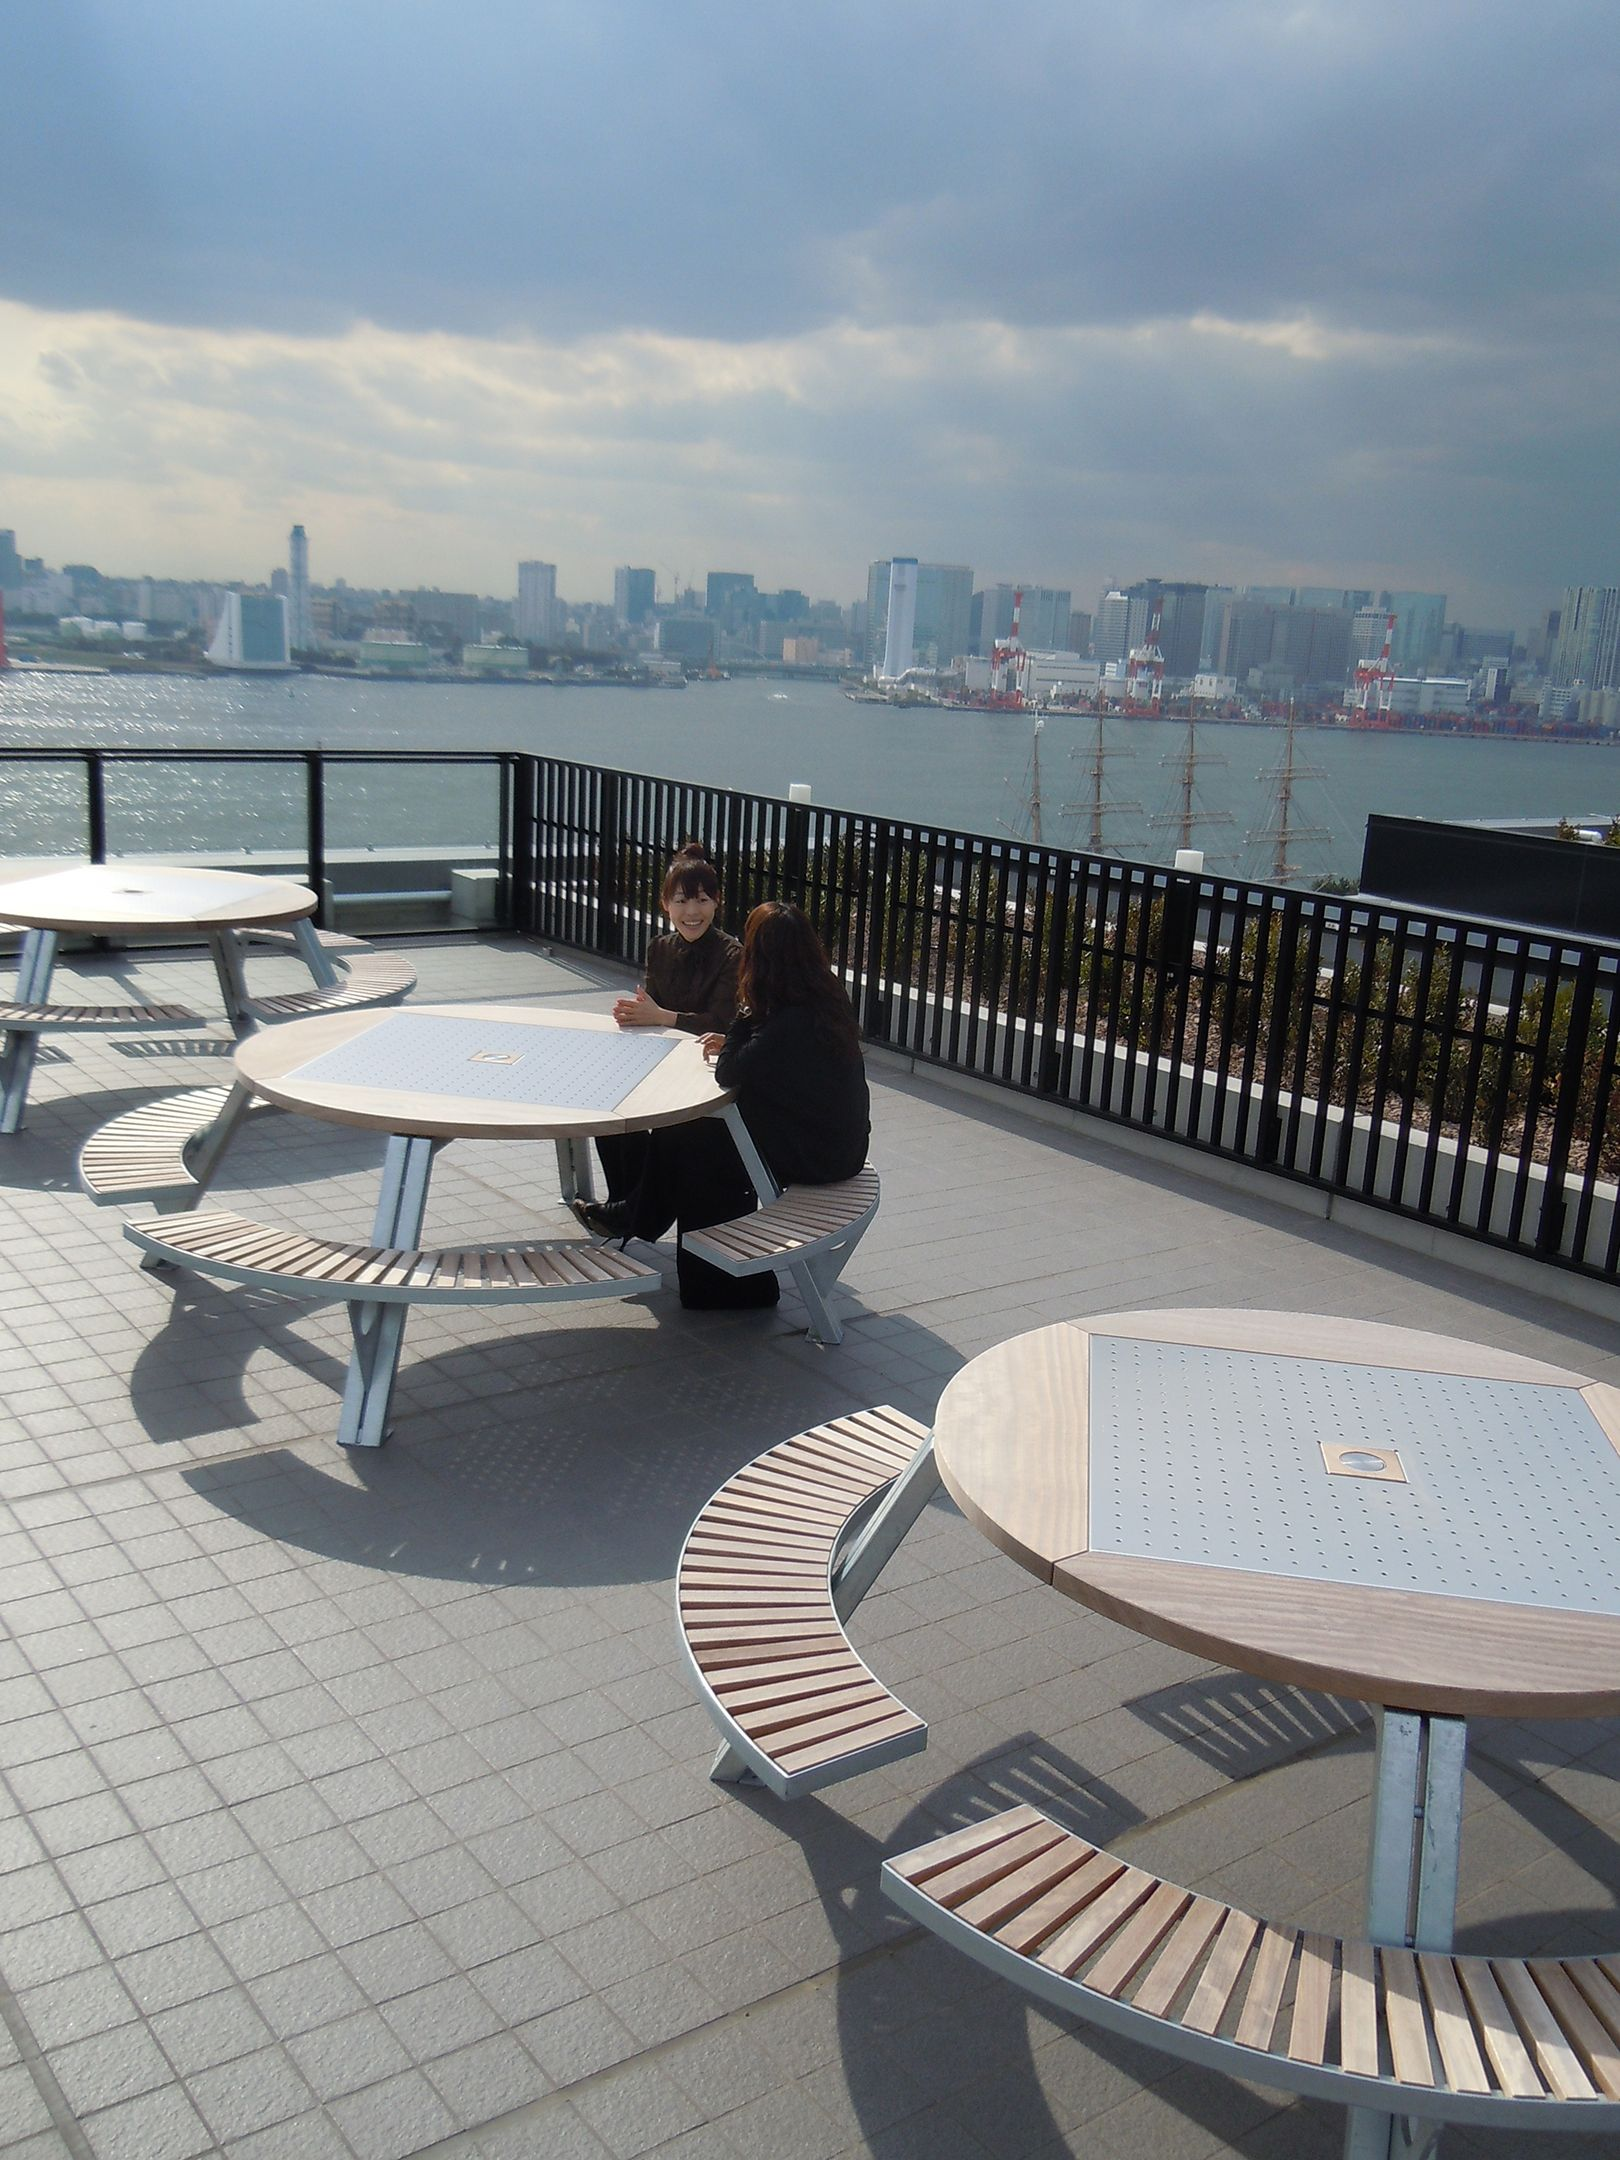 Gargantua is a large round outdoor table that offers superior